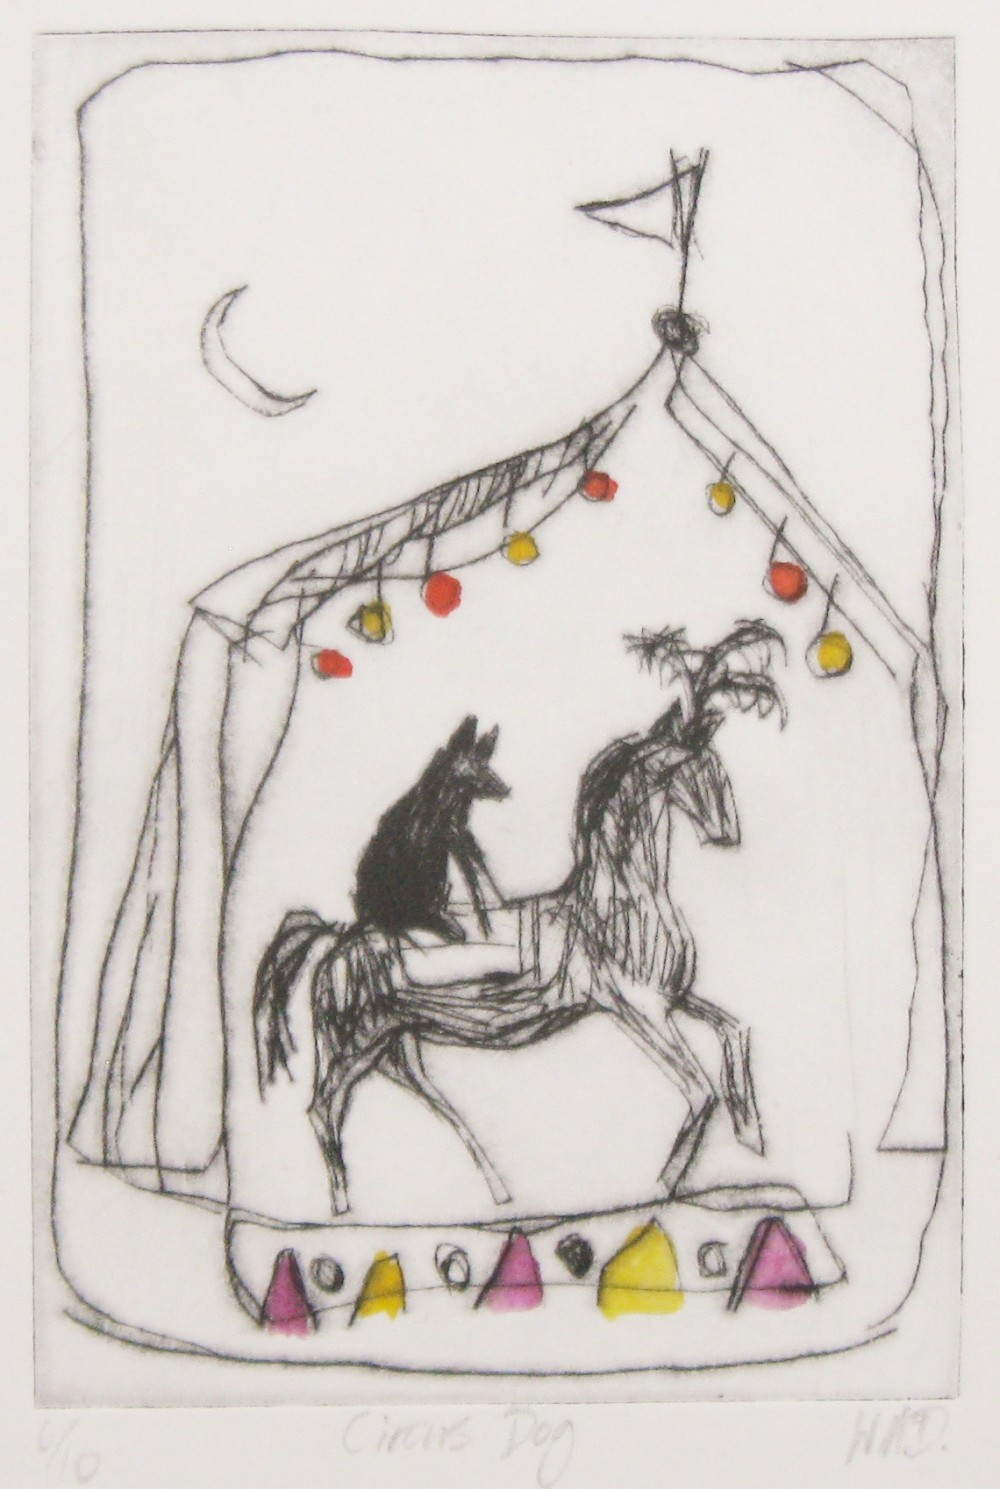 Circus Dog by Wendy McDonald